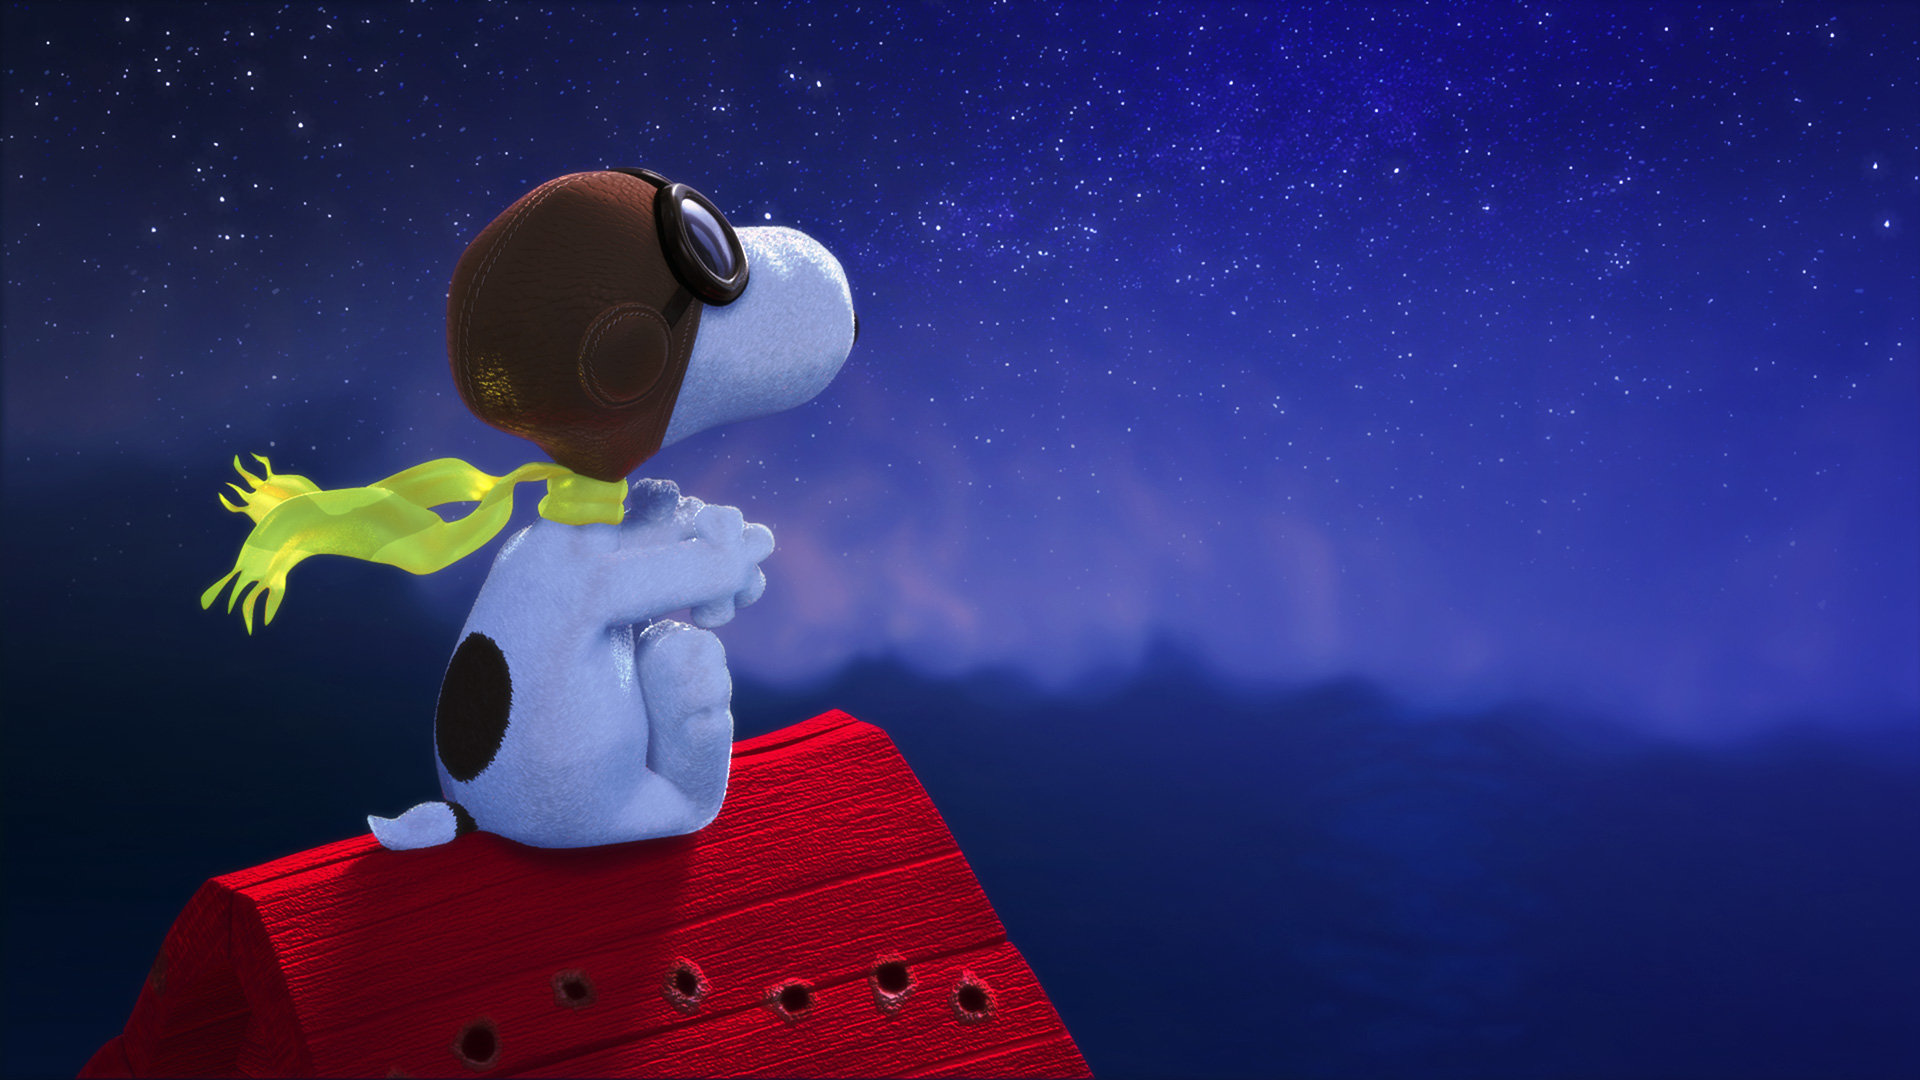 snoopy_nighttime_02.jpg